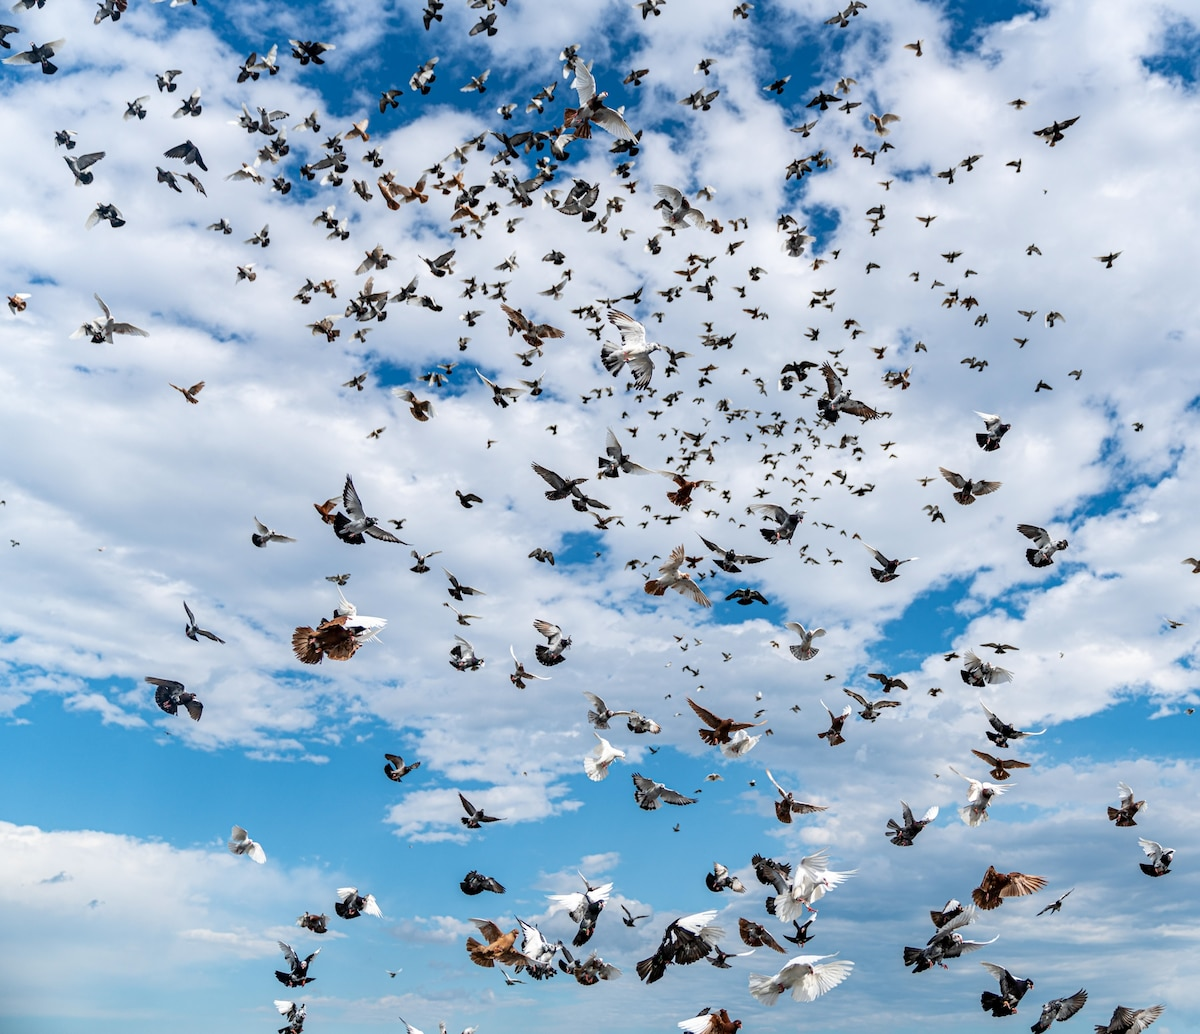 How many birds are there in the world?